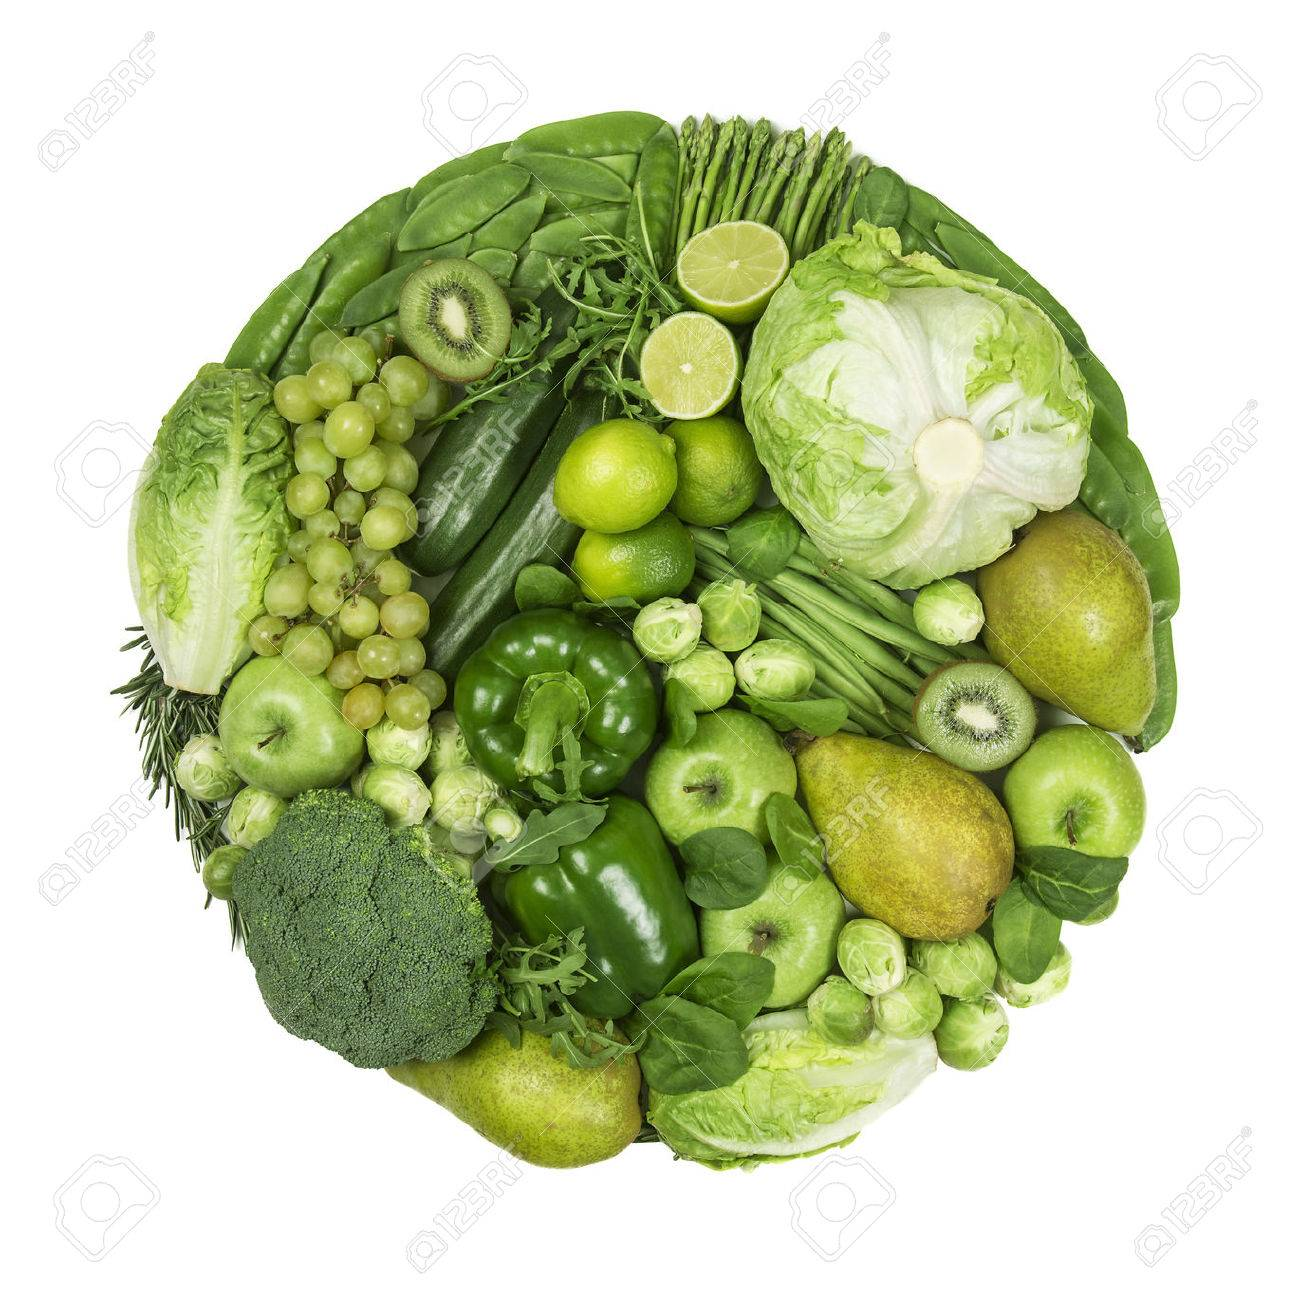 Circle of green fruits and vegetables isolated on a white background - 54145214